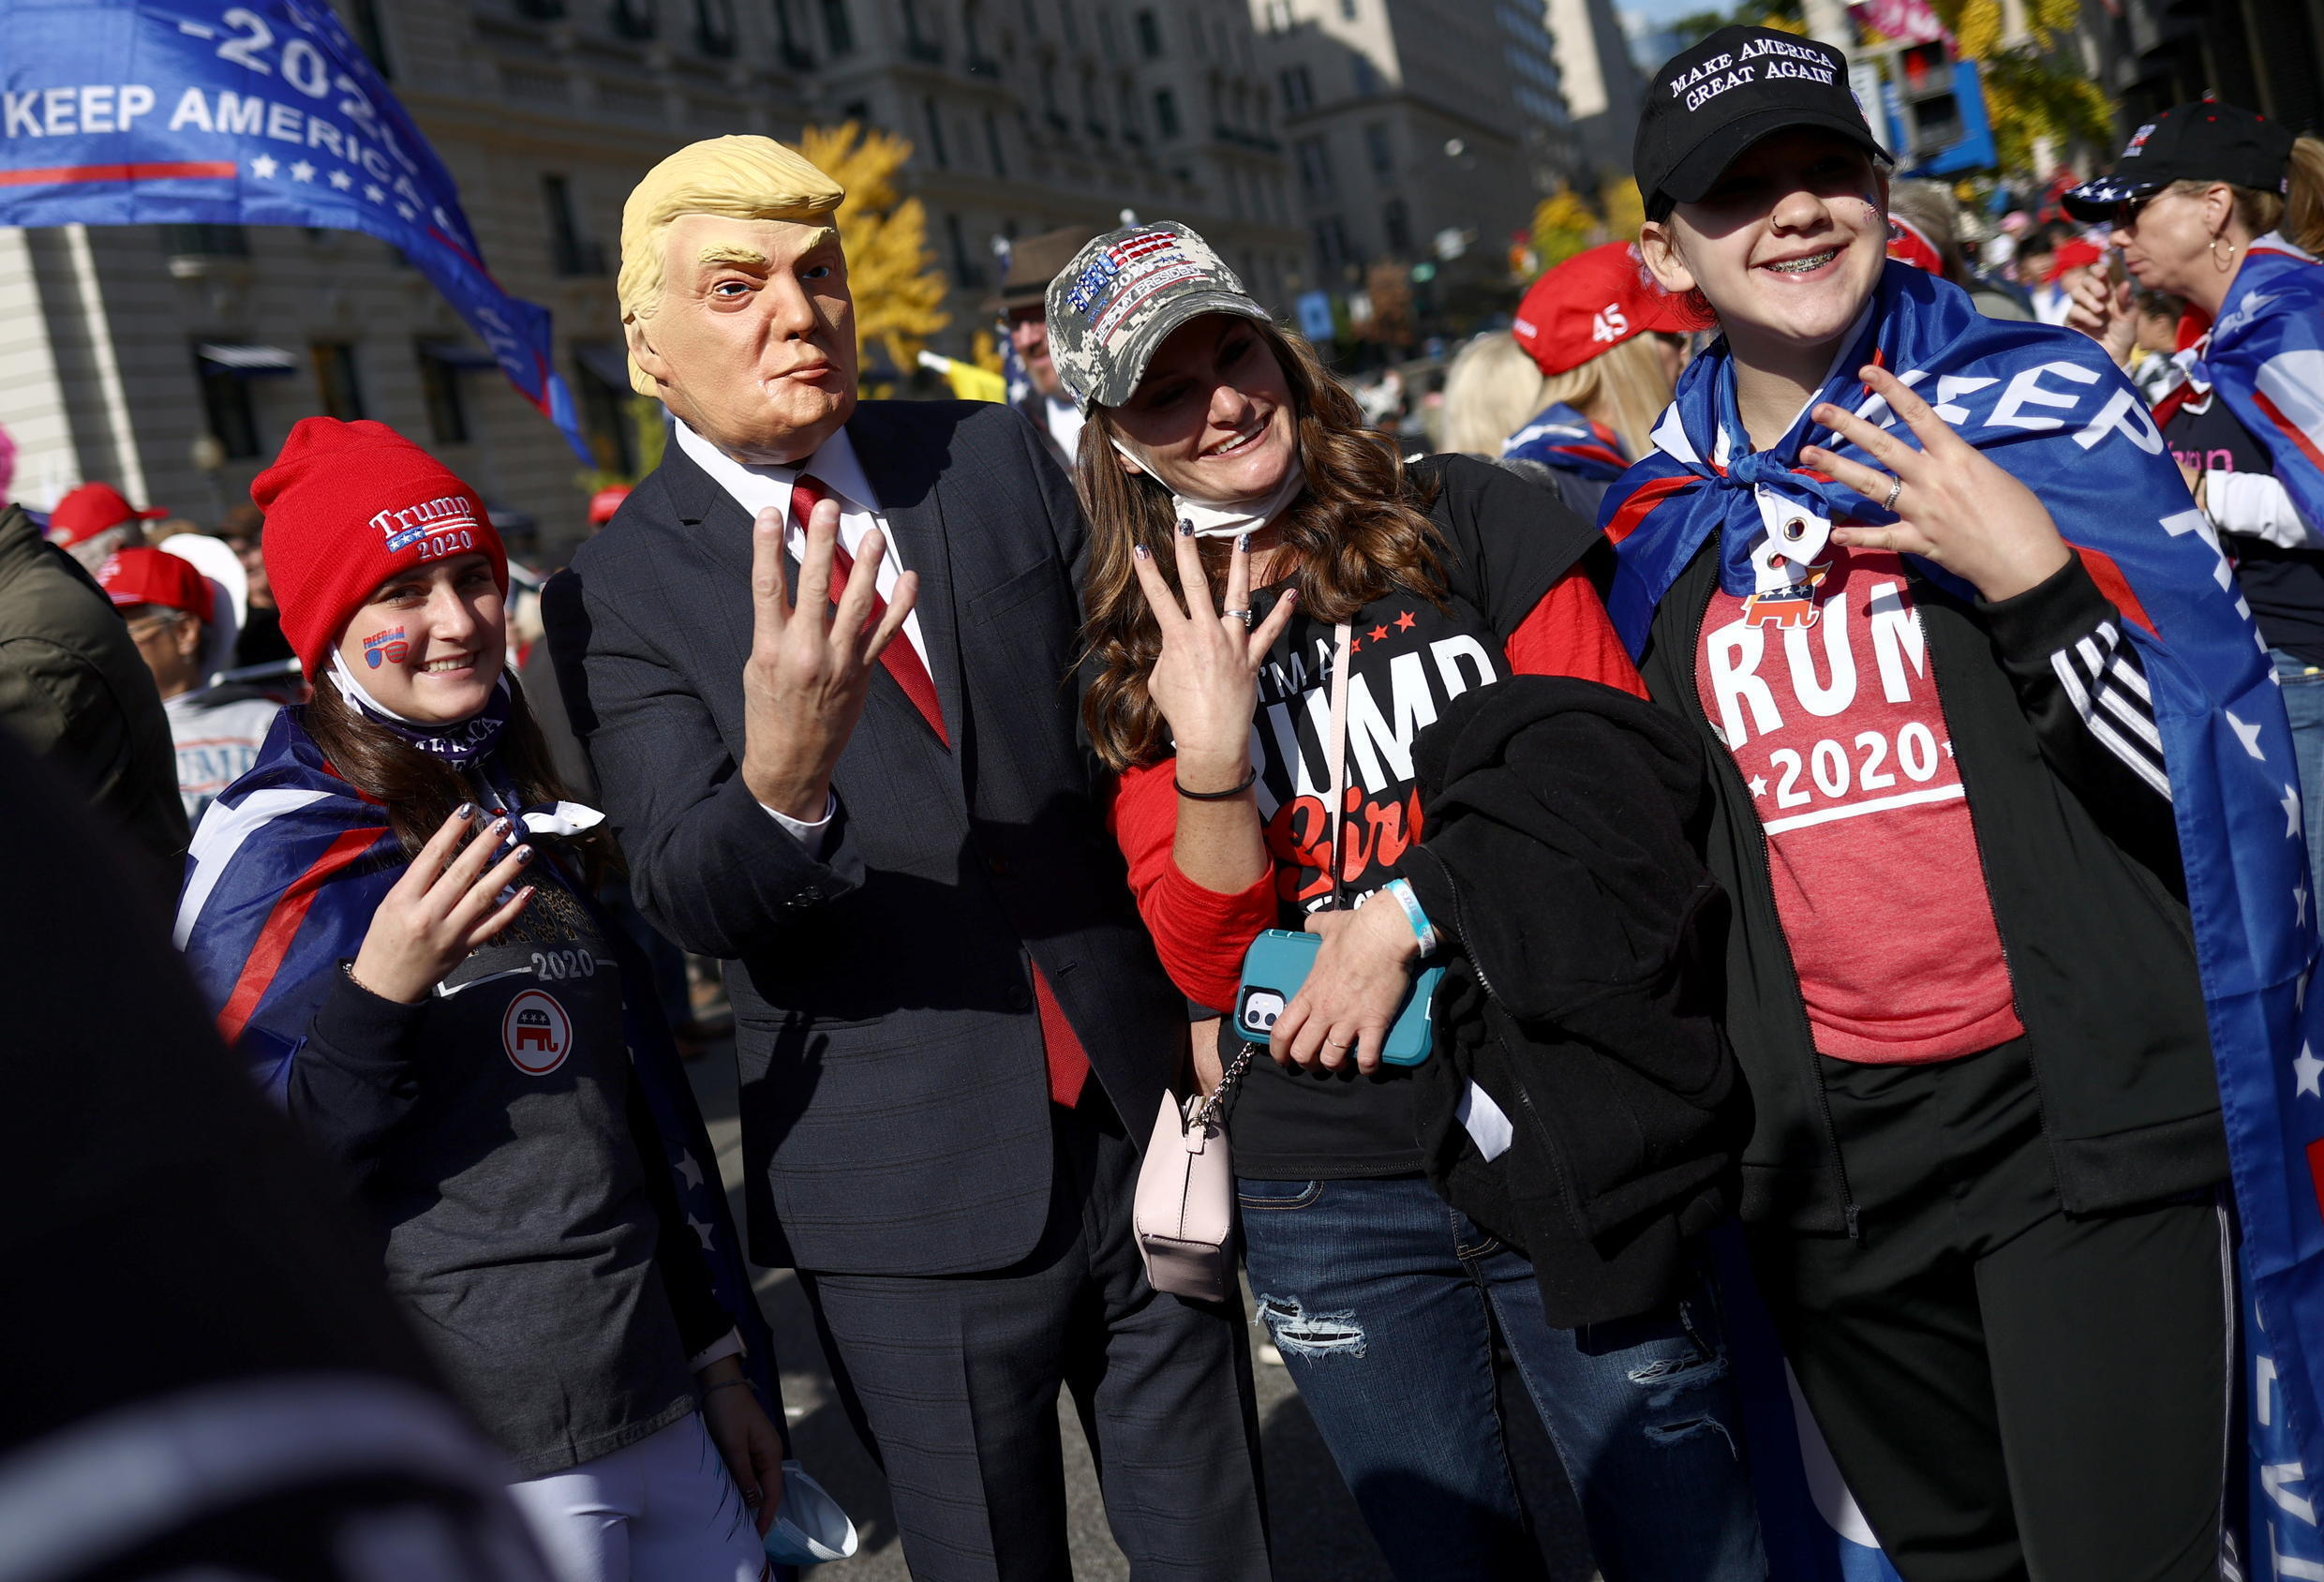 2020-11-14T171818Z_1813555456_RC253K9Q567Y_RTRMADP_3_USA-ELECTION-PROTEST